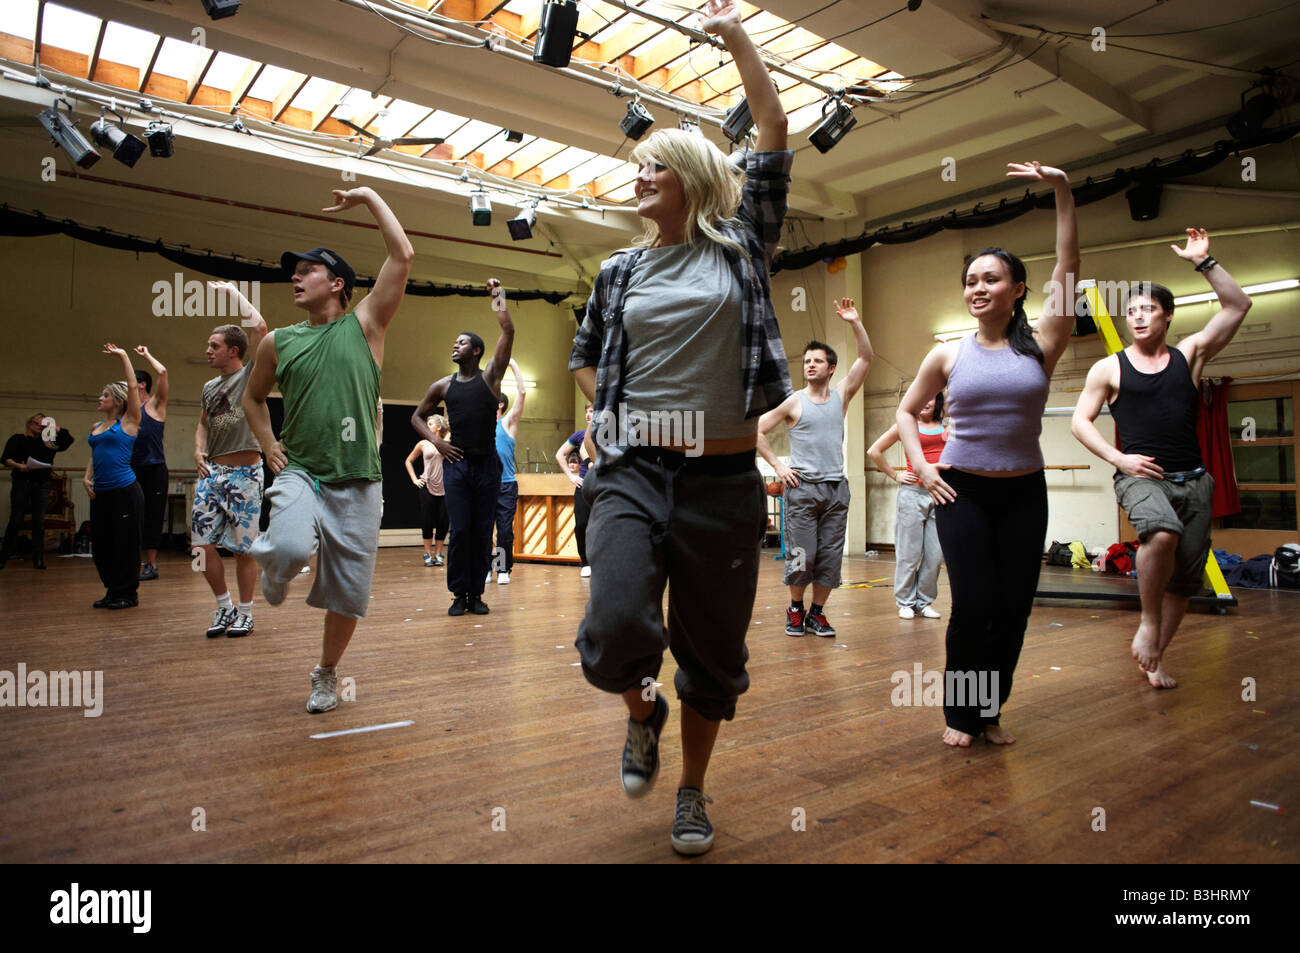 Cast members of High School Musical rehearse their song and dance routines at the Dance Attic, Fulham, London - Stock Image